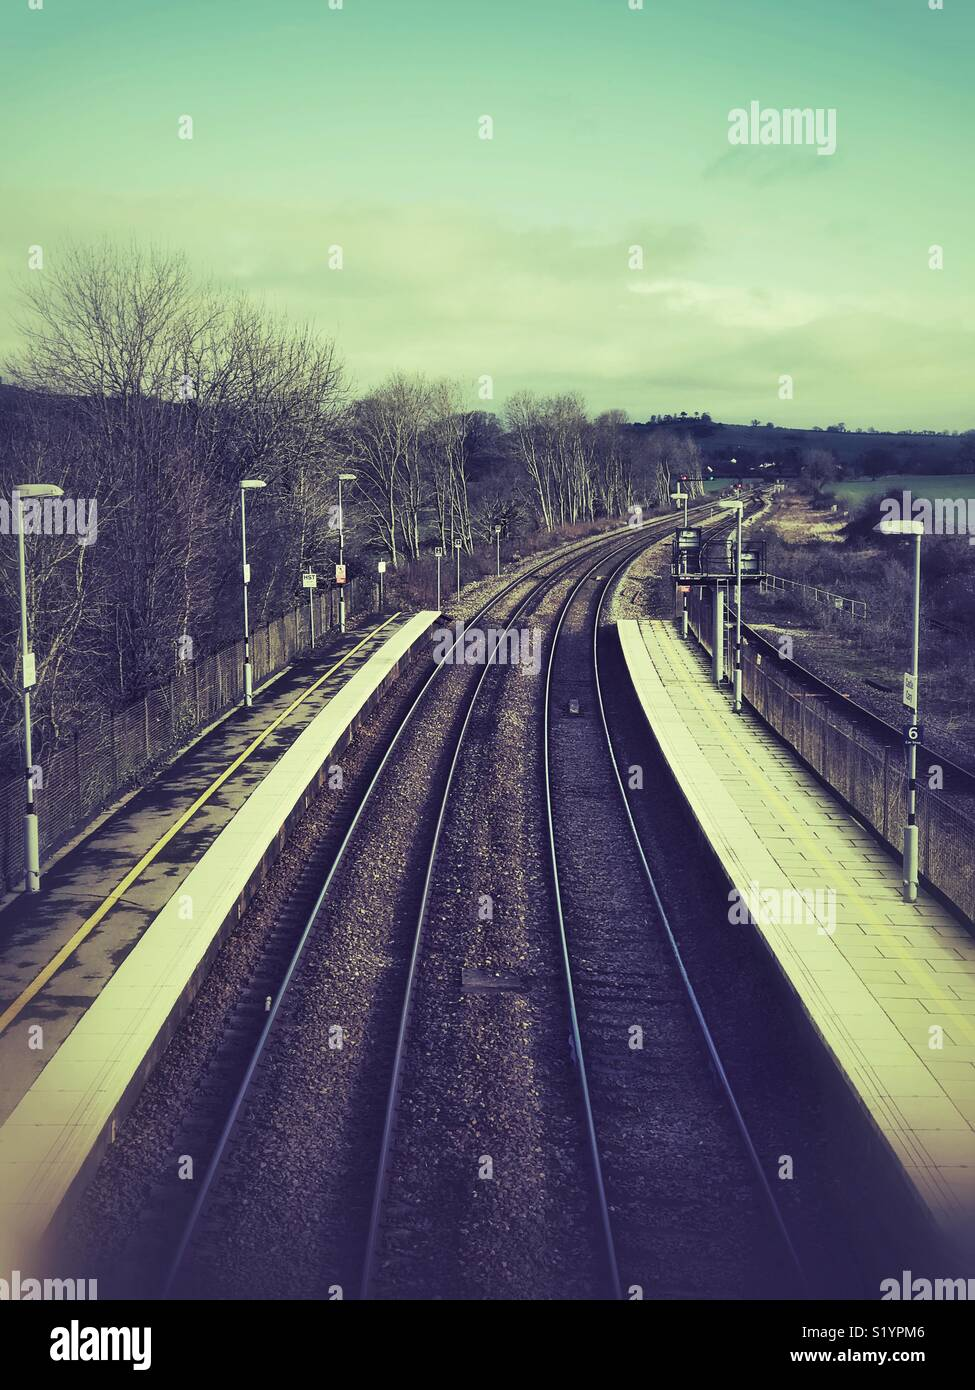 A train line stretching into the distance - Stock Image